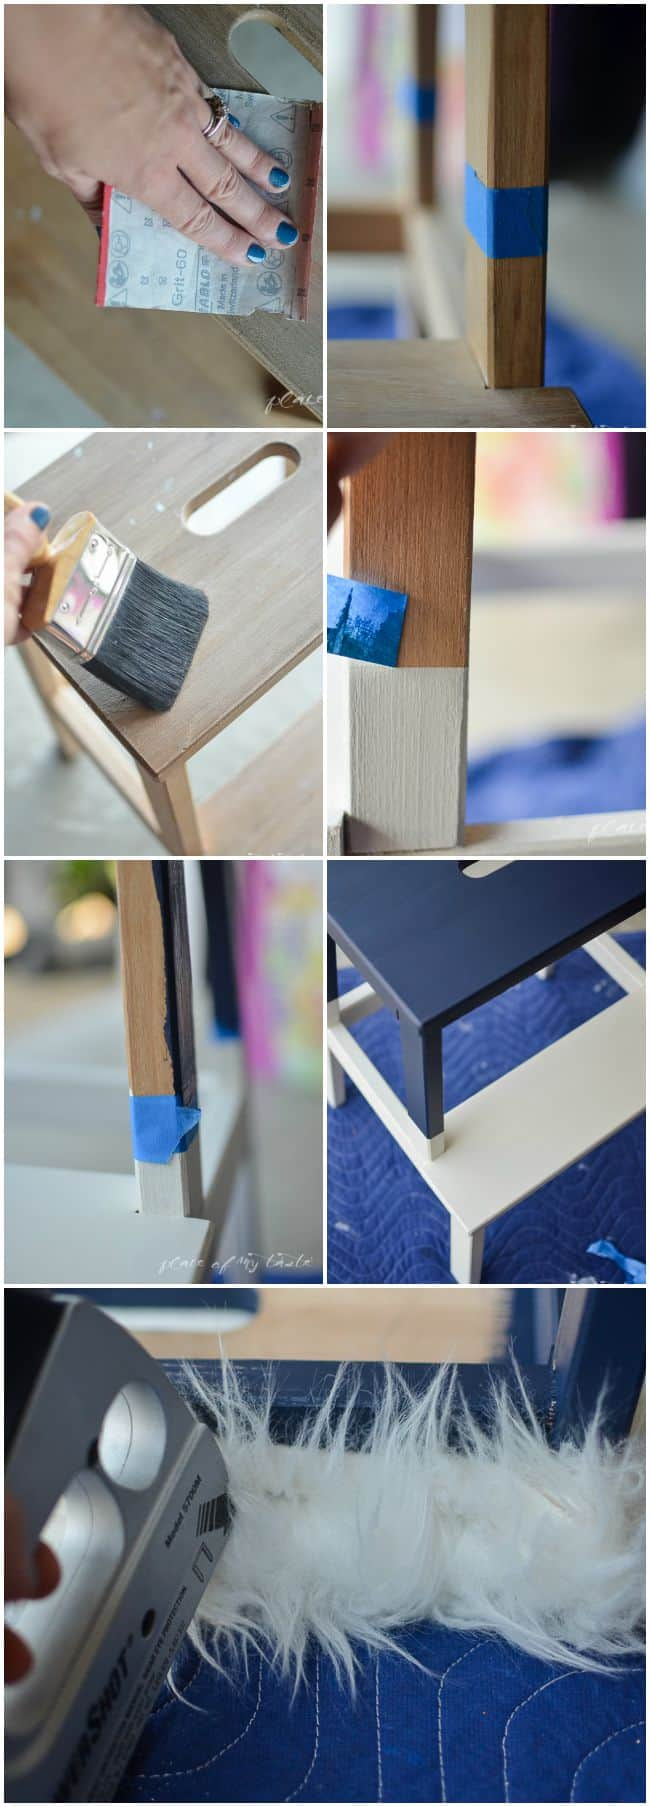 ikea stool hack